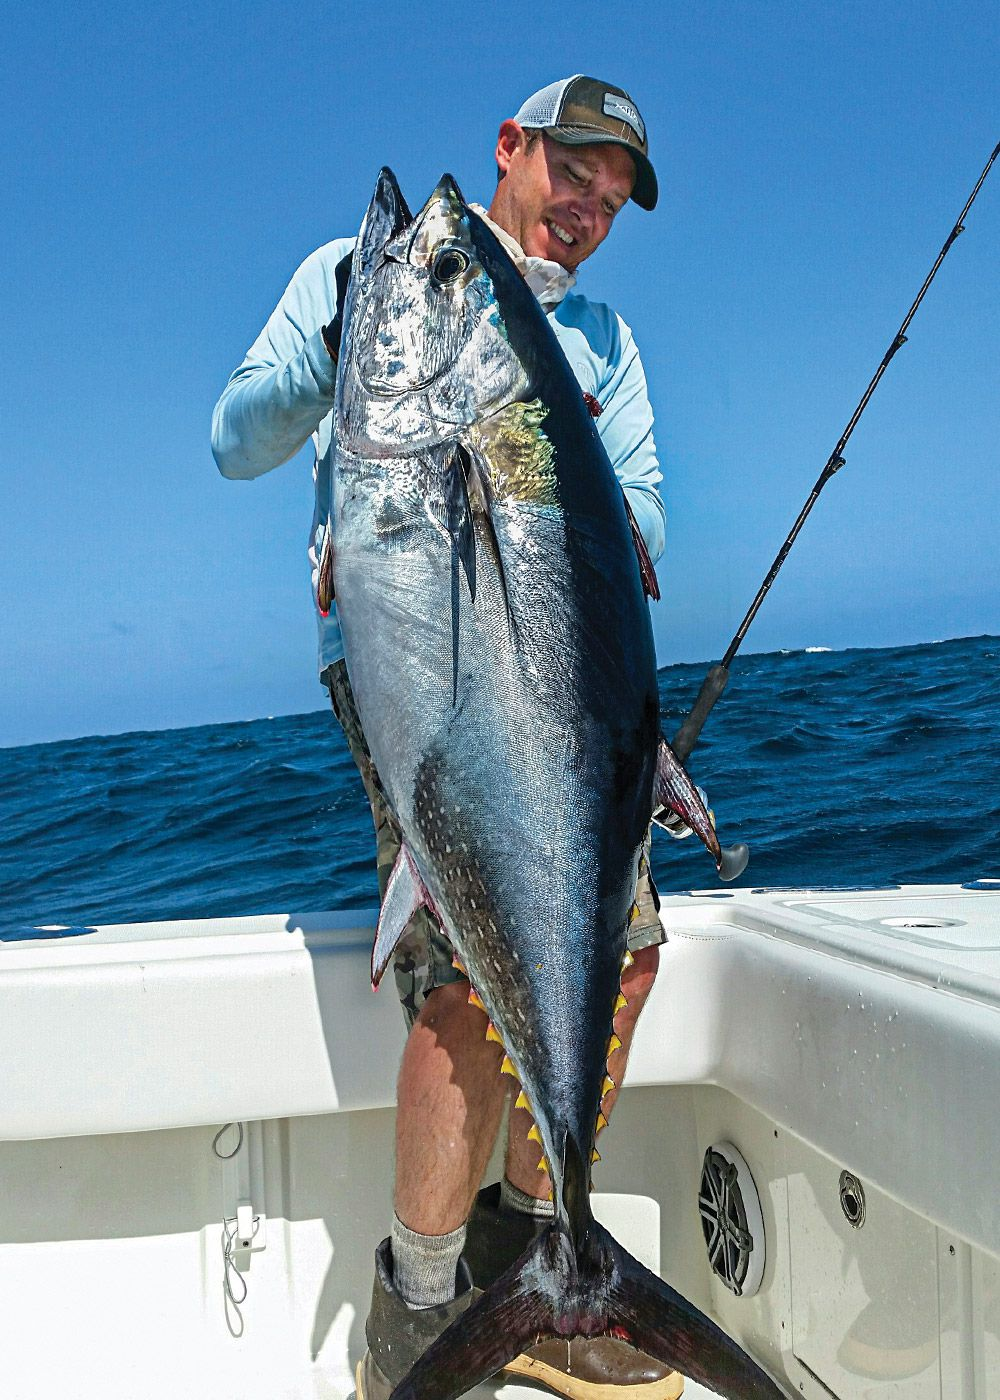 Tuned tactics improve the odds with SoCal bluefins.